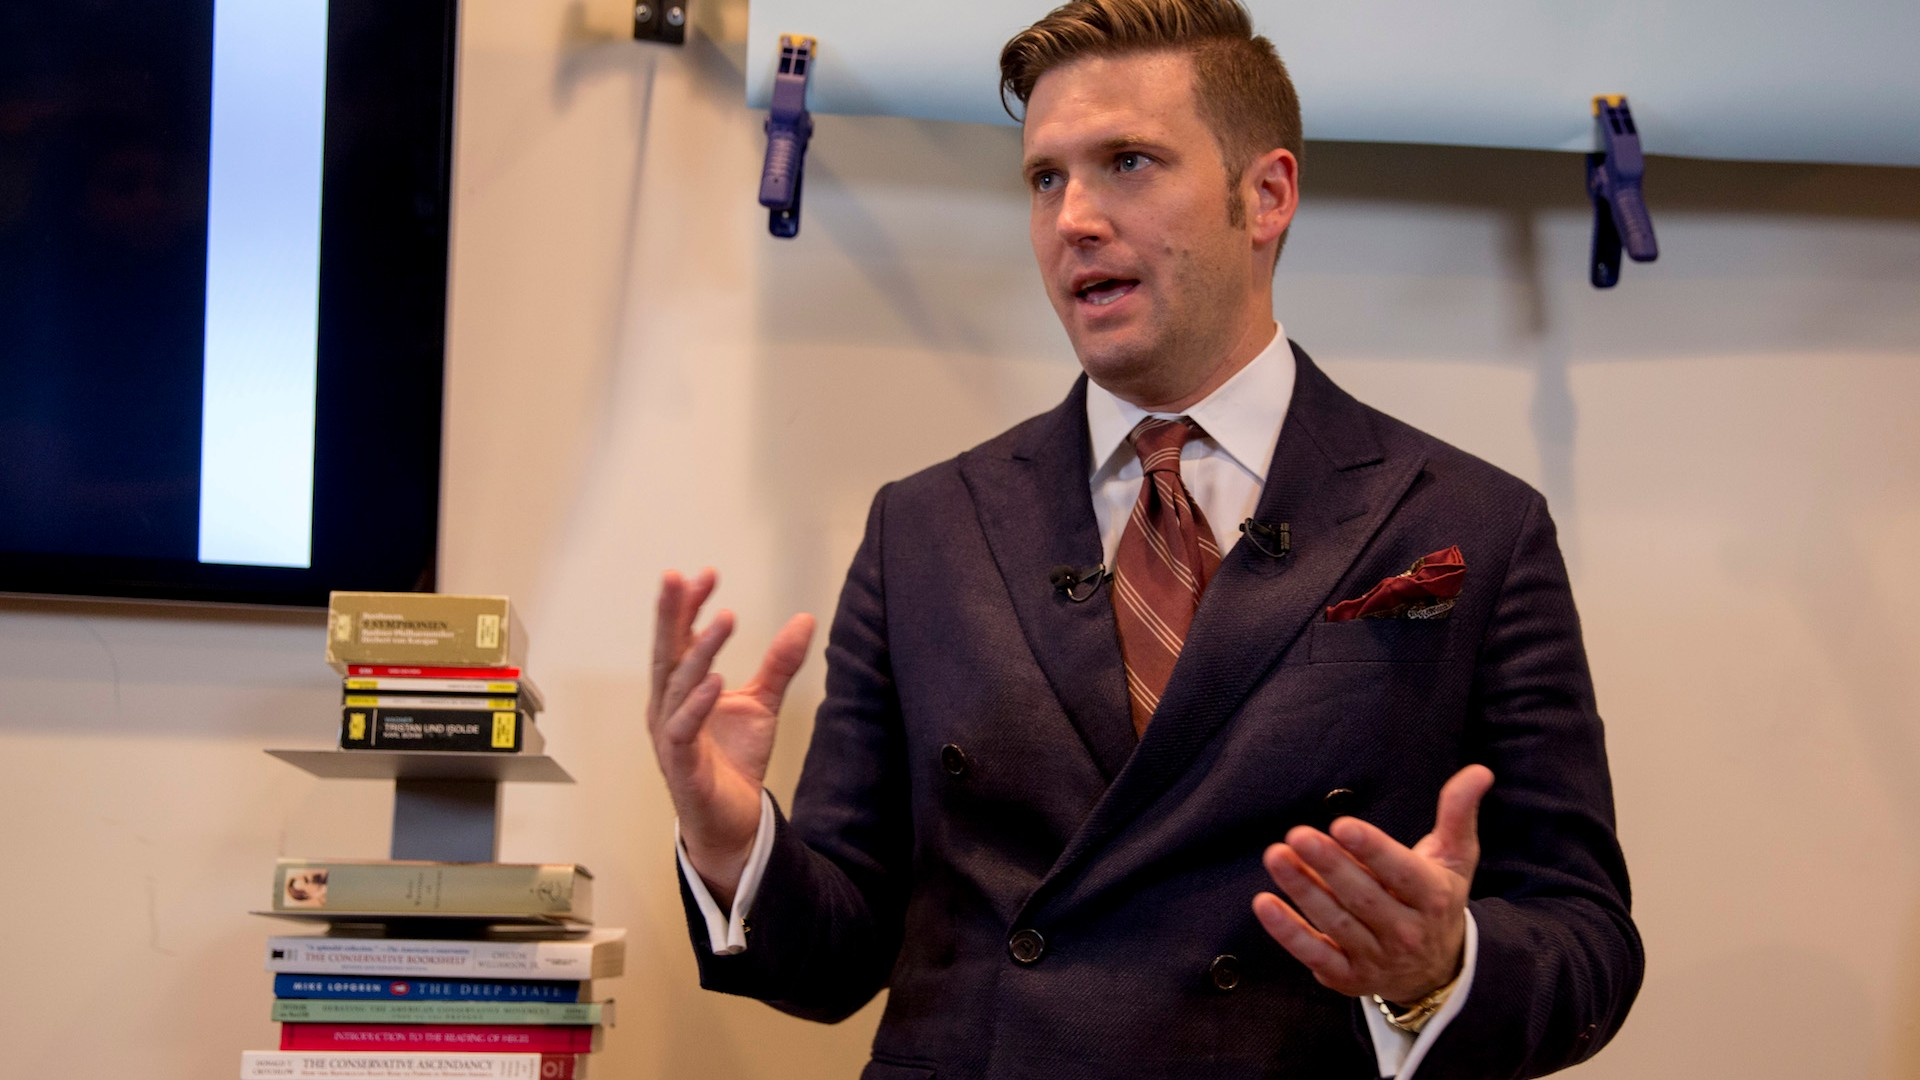 White nationalist Richard Spencer's pages just got kicked off Facebook